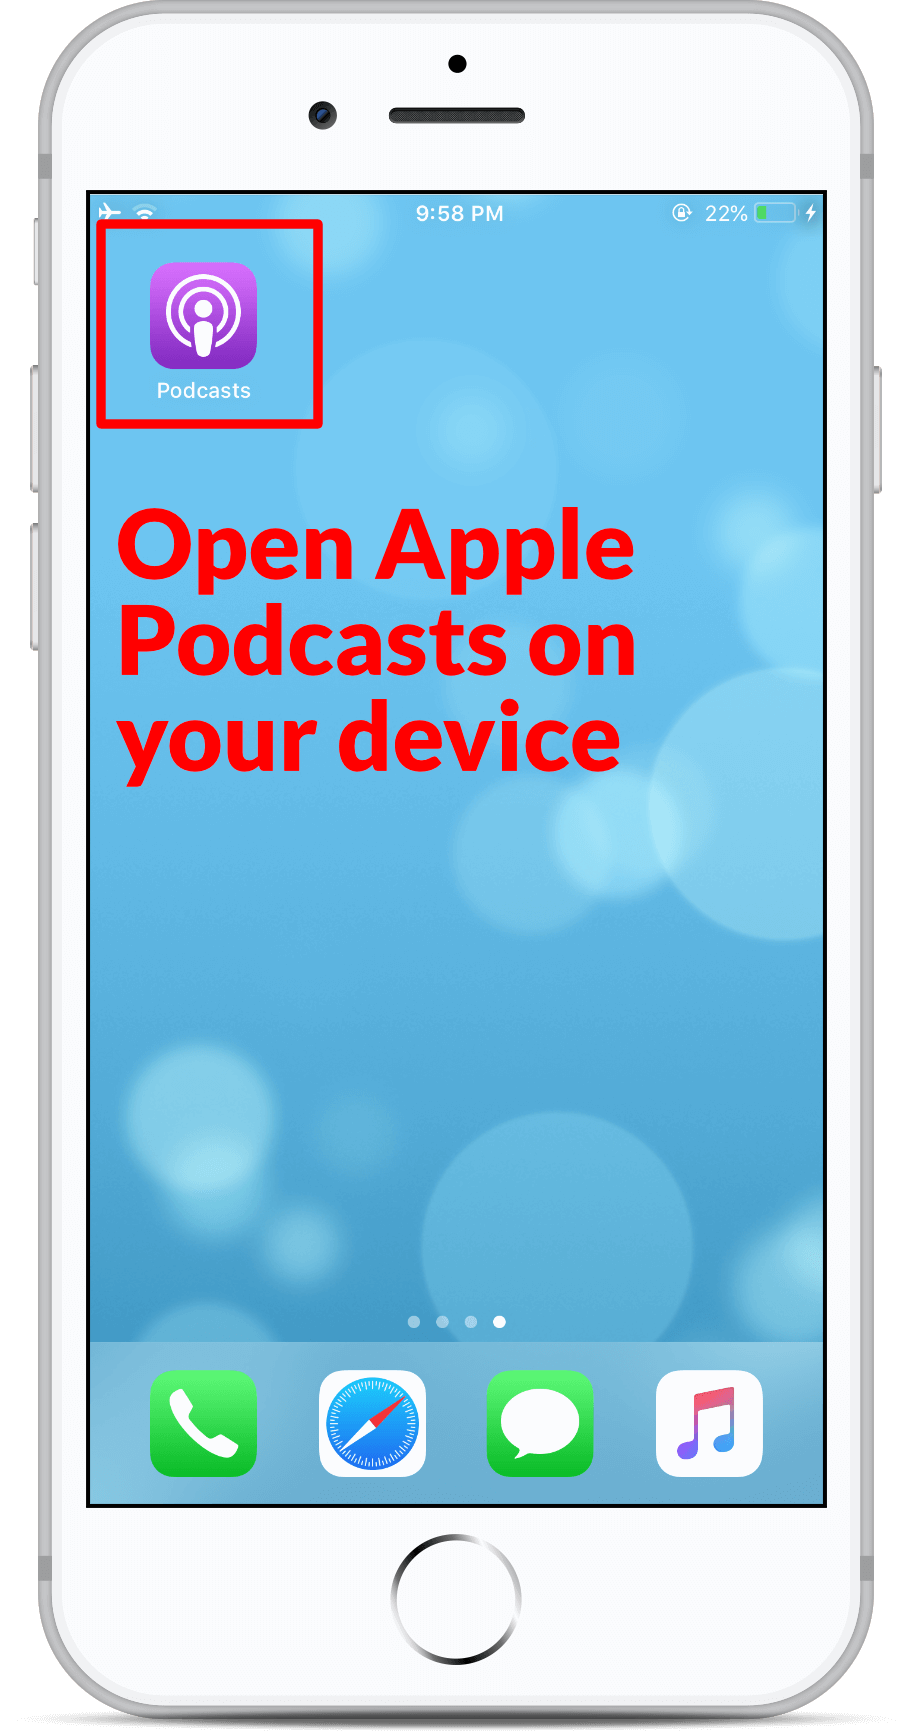 Subscribe on Apple Podcast - Step 1